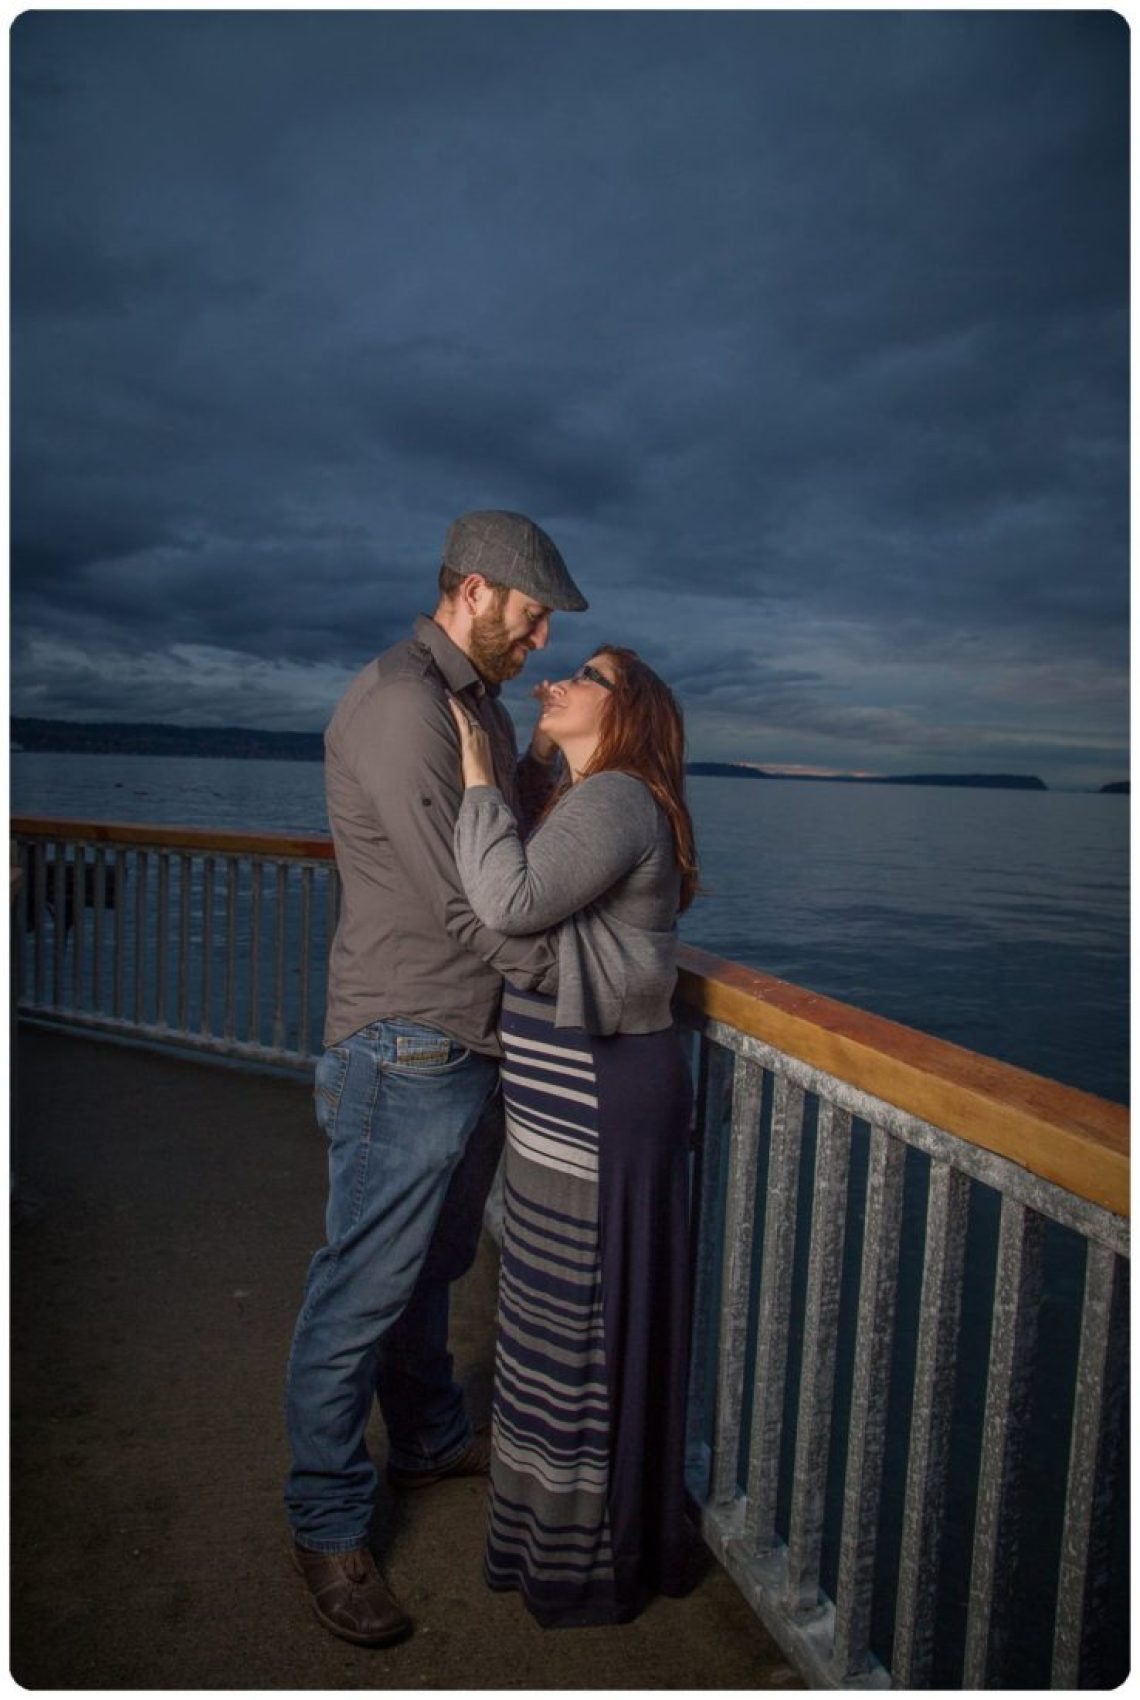 2017 02 06 0015 Sailing our love through blue skys | Mukilteo Lighthouse Engagement Session